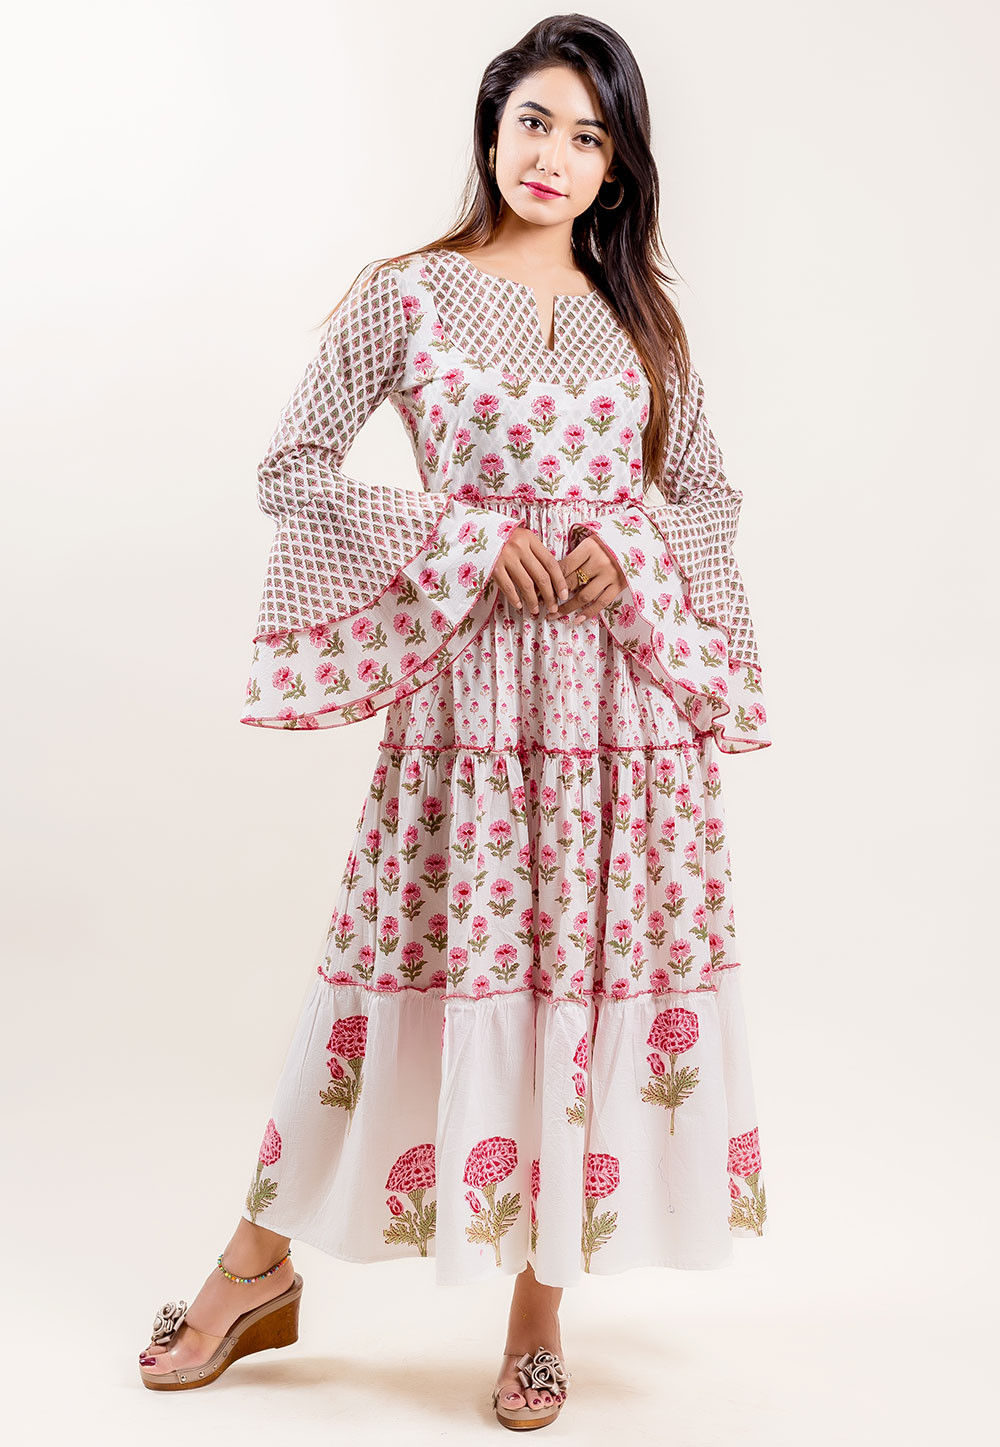 Block Printed Cotton Tiered Dress in Off White and Pink 9f587033a